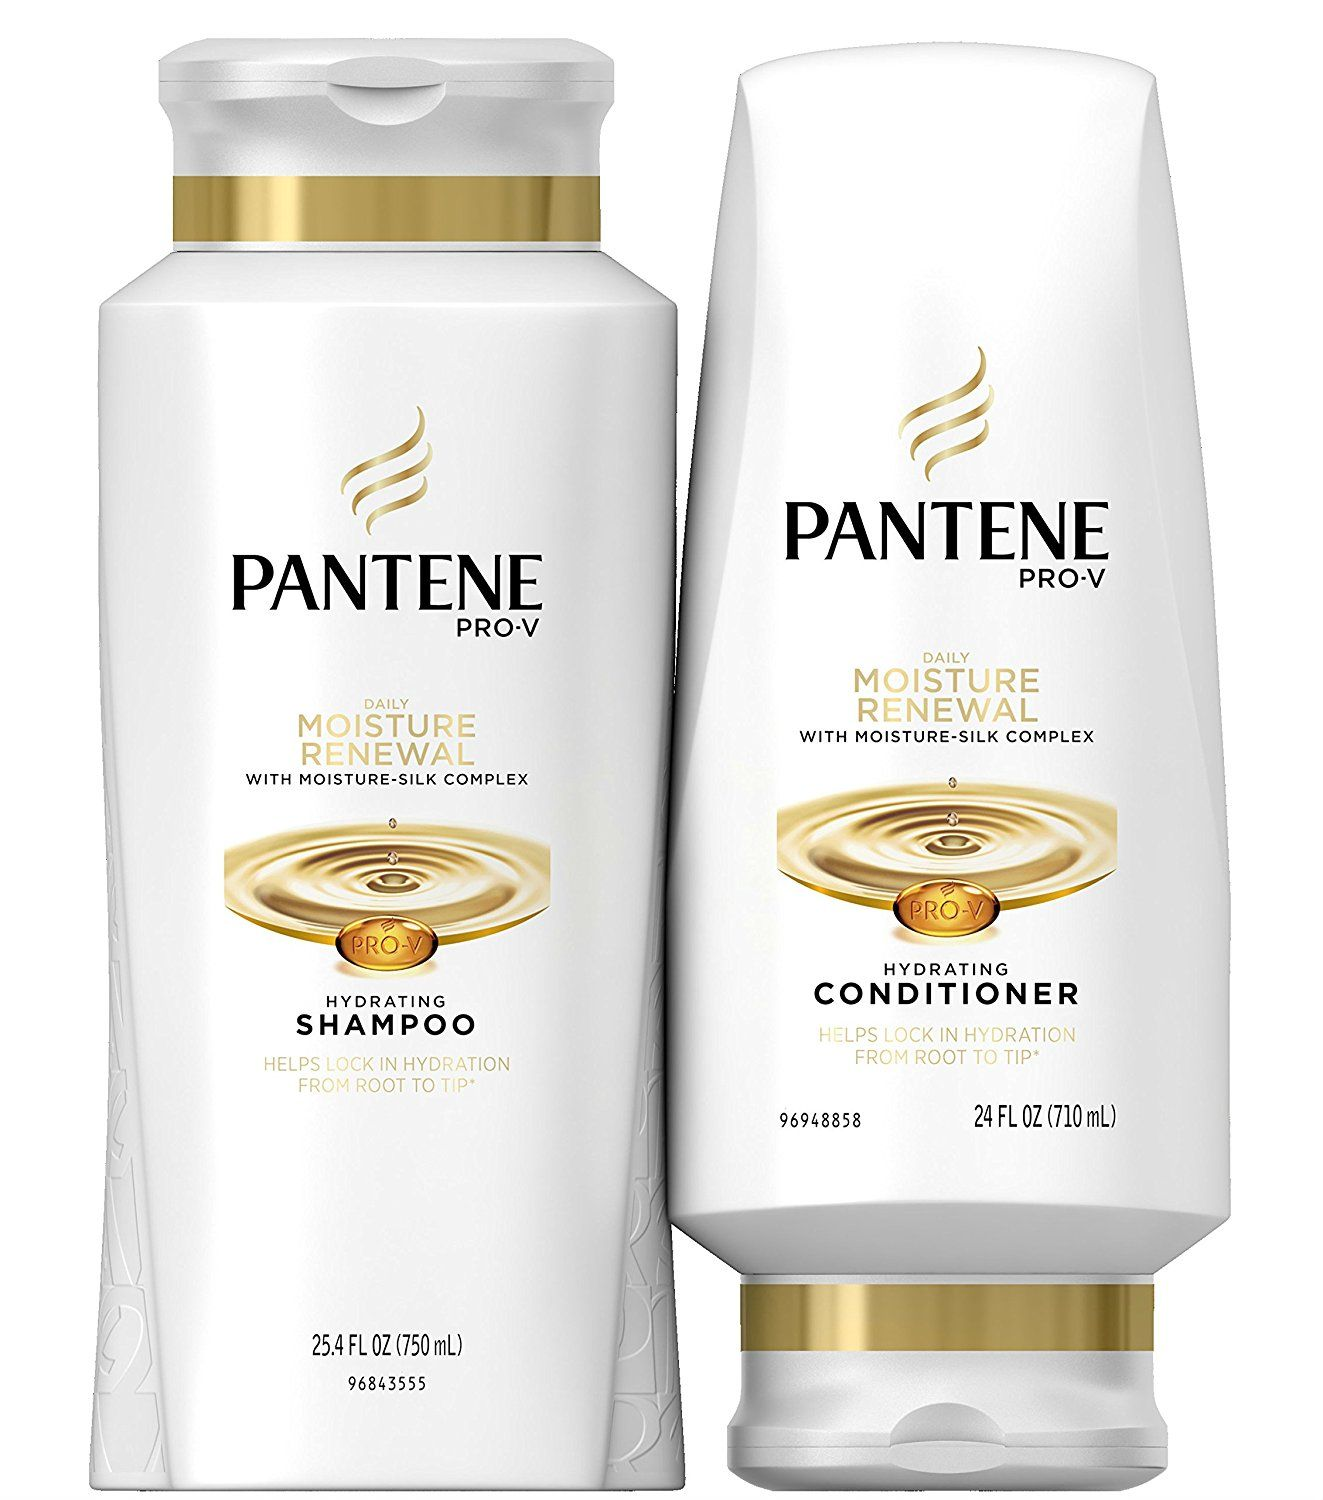 Pantene Pro V Daily Moisture Renewal Shampoo And Conditioner Set Click Image To Review More Details Shampoo Pantene Pantene Shampoo